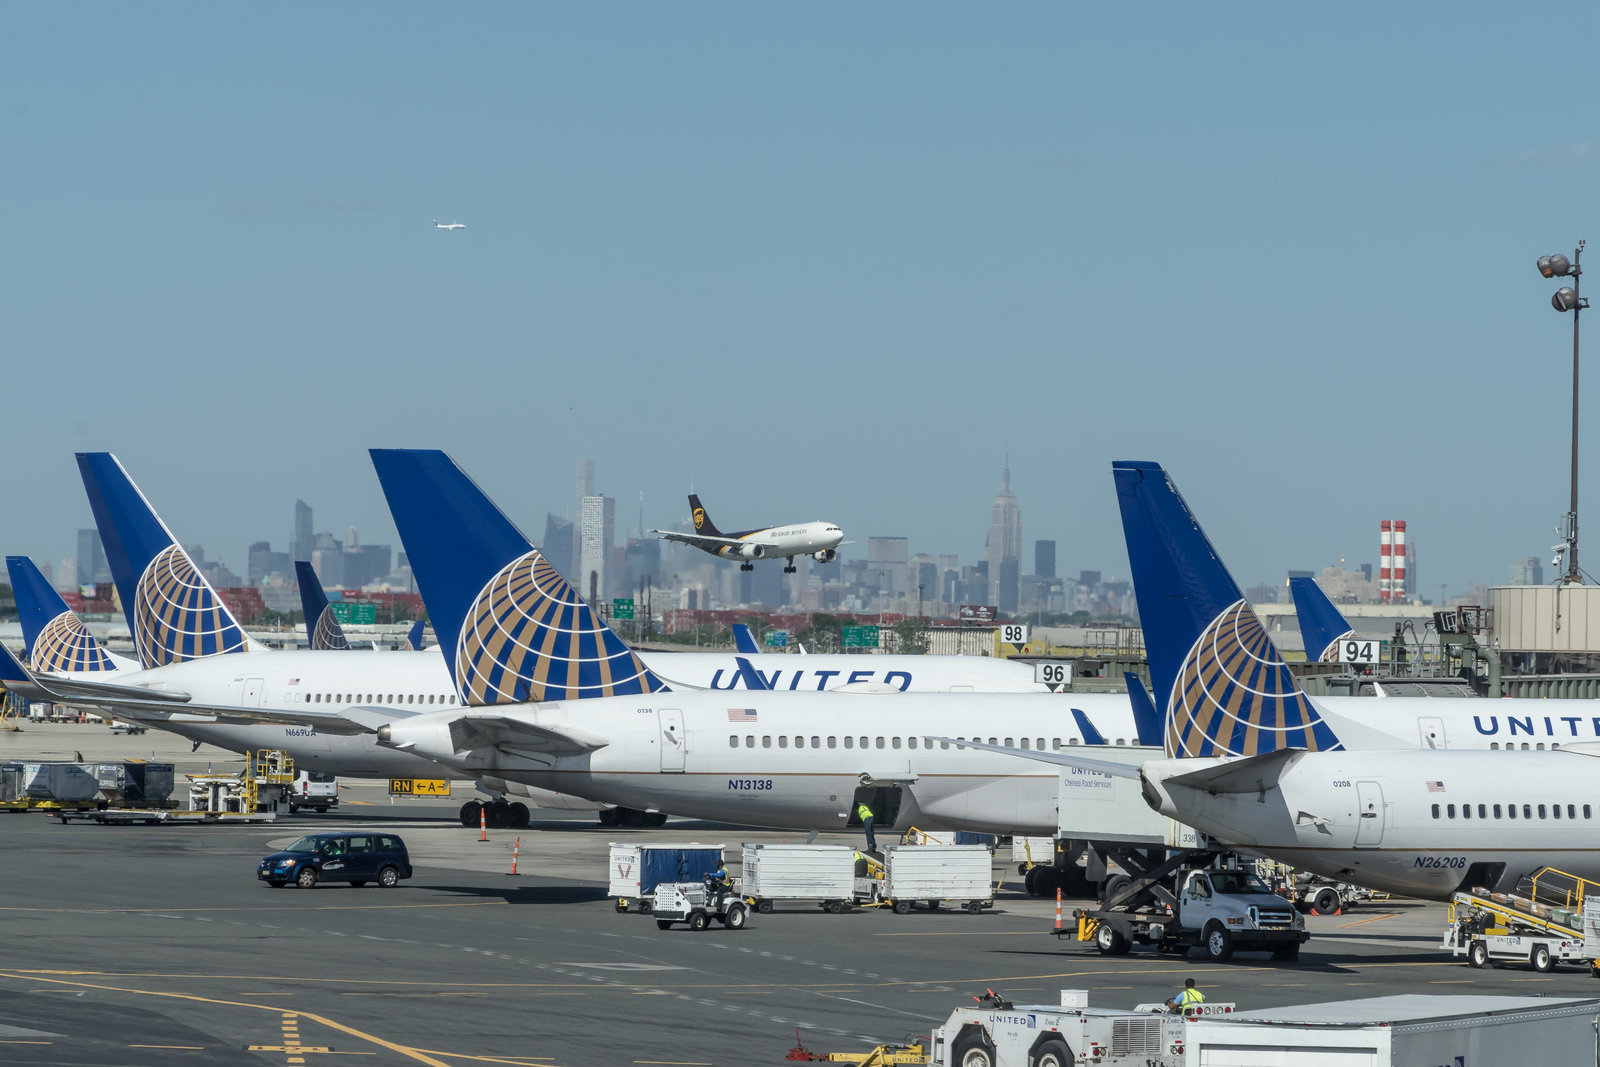 Passenger 'smearing feces' causes United Airlines flight to redirect